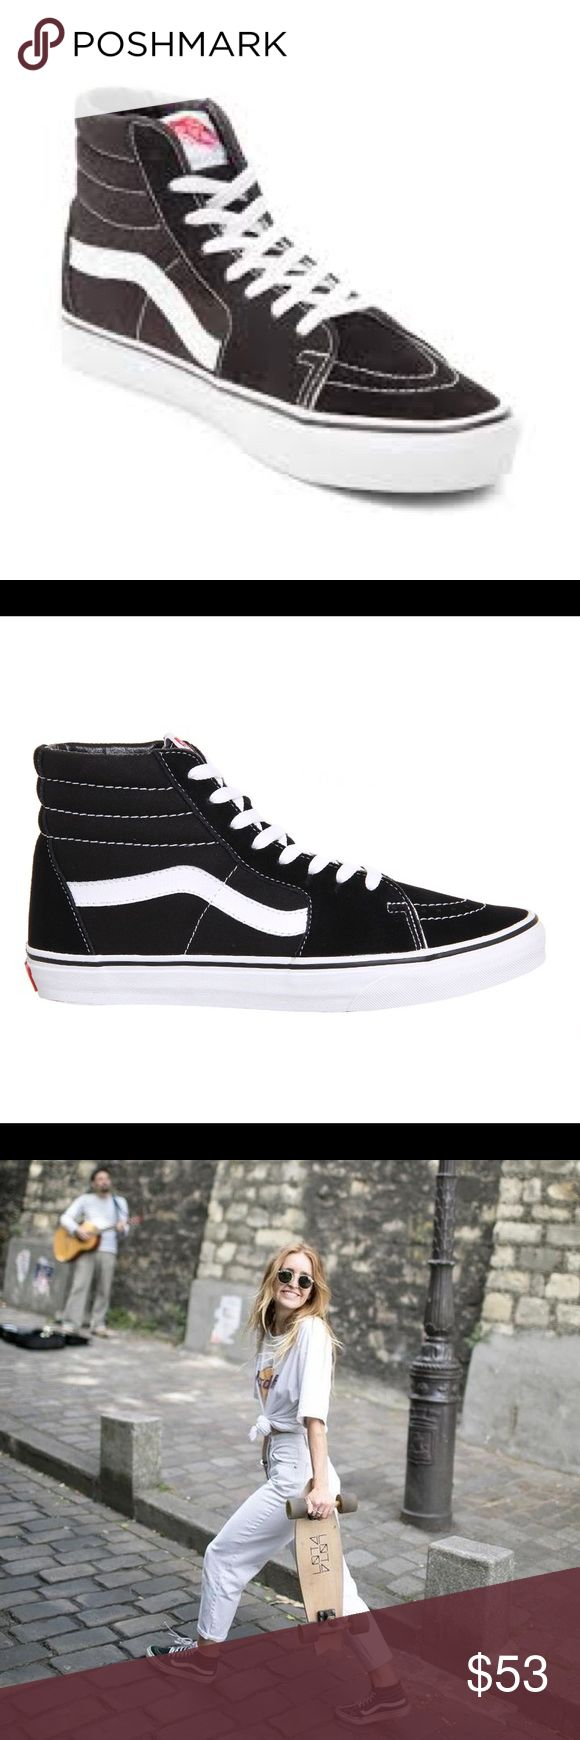 Vans Hi Sk8 Slim, Size 5, New With Box Vans The Sk8-Hi Slim, a slimmed down version of the legendary lace-up high top, features sturdy canvas and suede uppers, signature waffle rubber outsoles, and padded collar and heel counters for support and flexibility. - Brand new, never been worn-Not my style Vans Shoes Sneakers